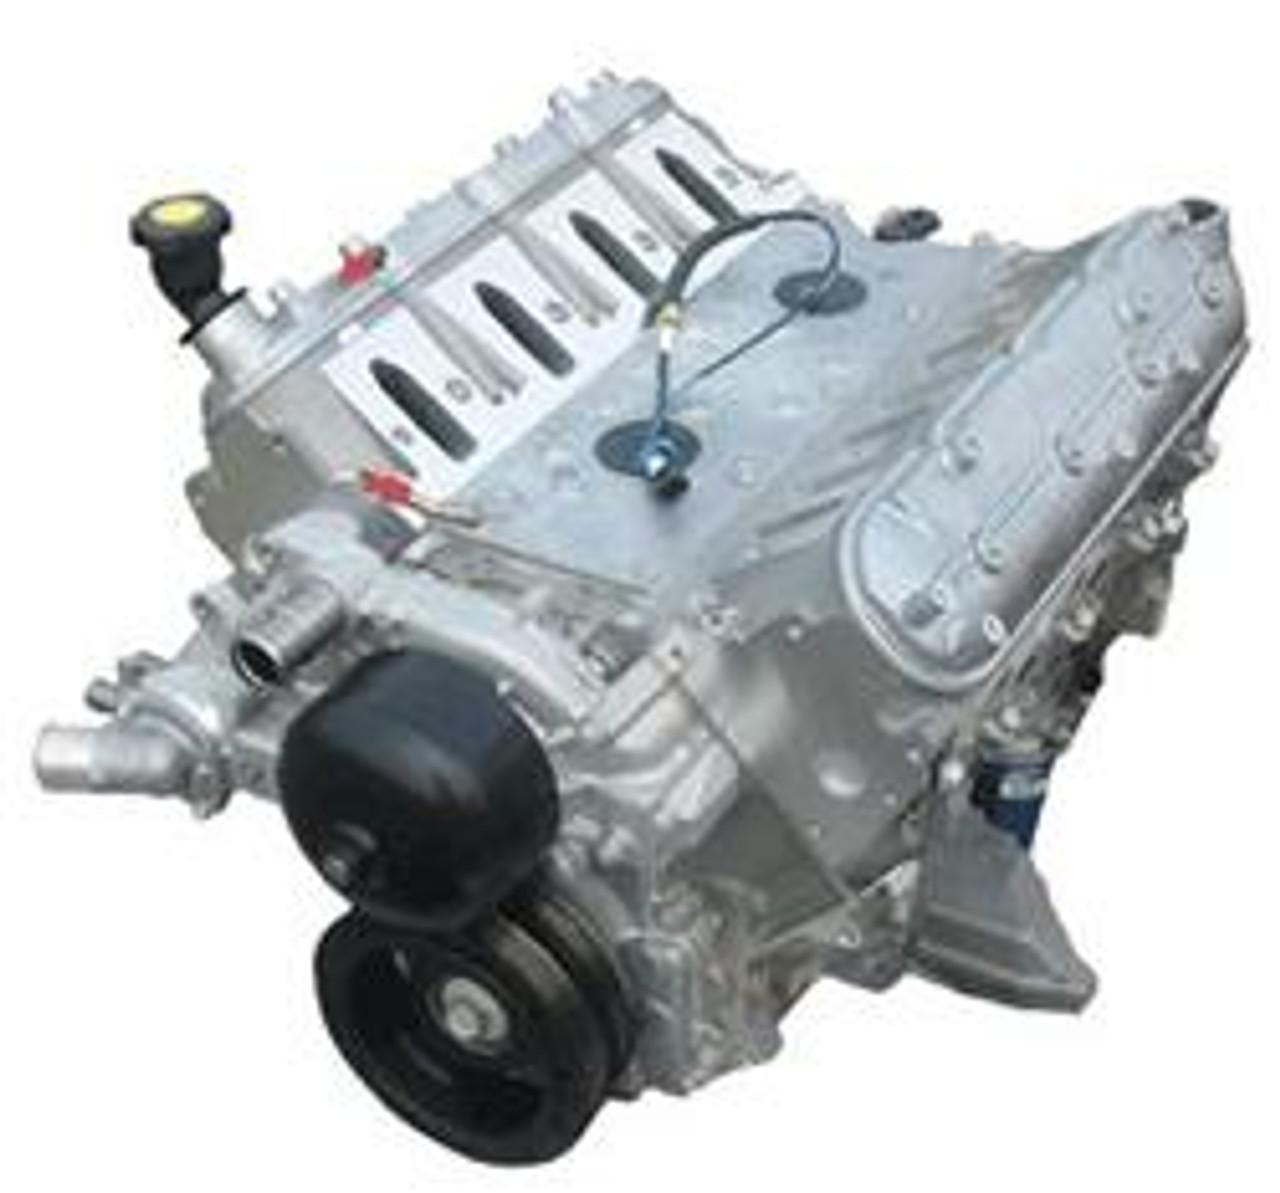 LS1 5.7L Reconditioned Engine | WITH Camshaft Package | Long Motor